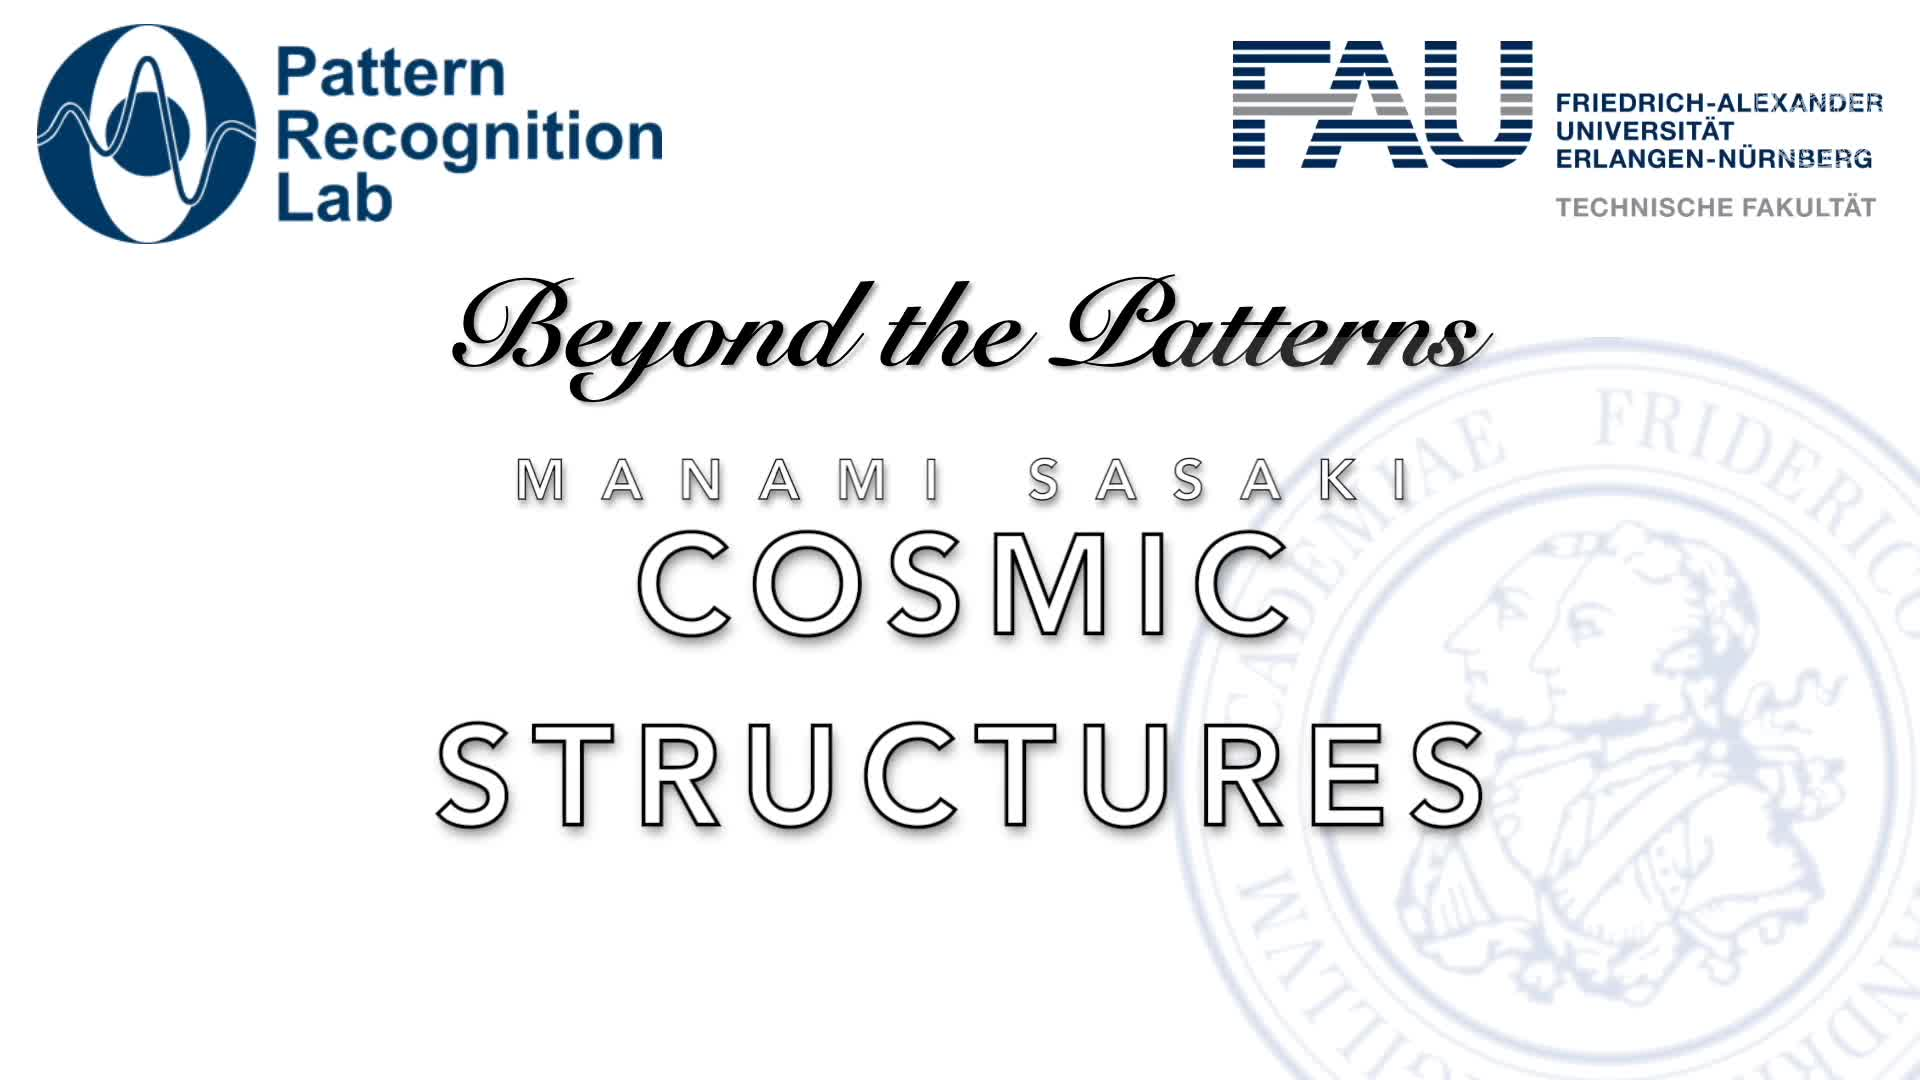 Beyond the Patterns - Manami Sasaki - Cosmic Structures preview image